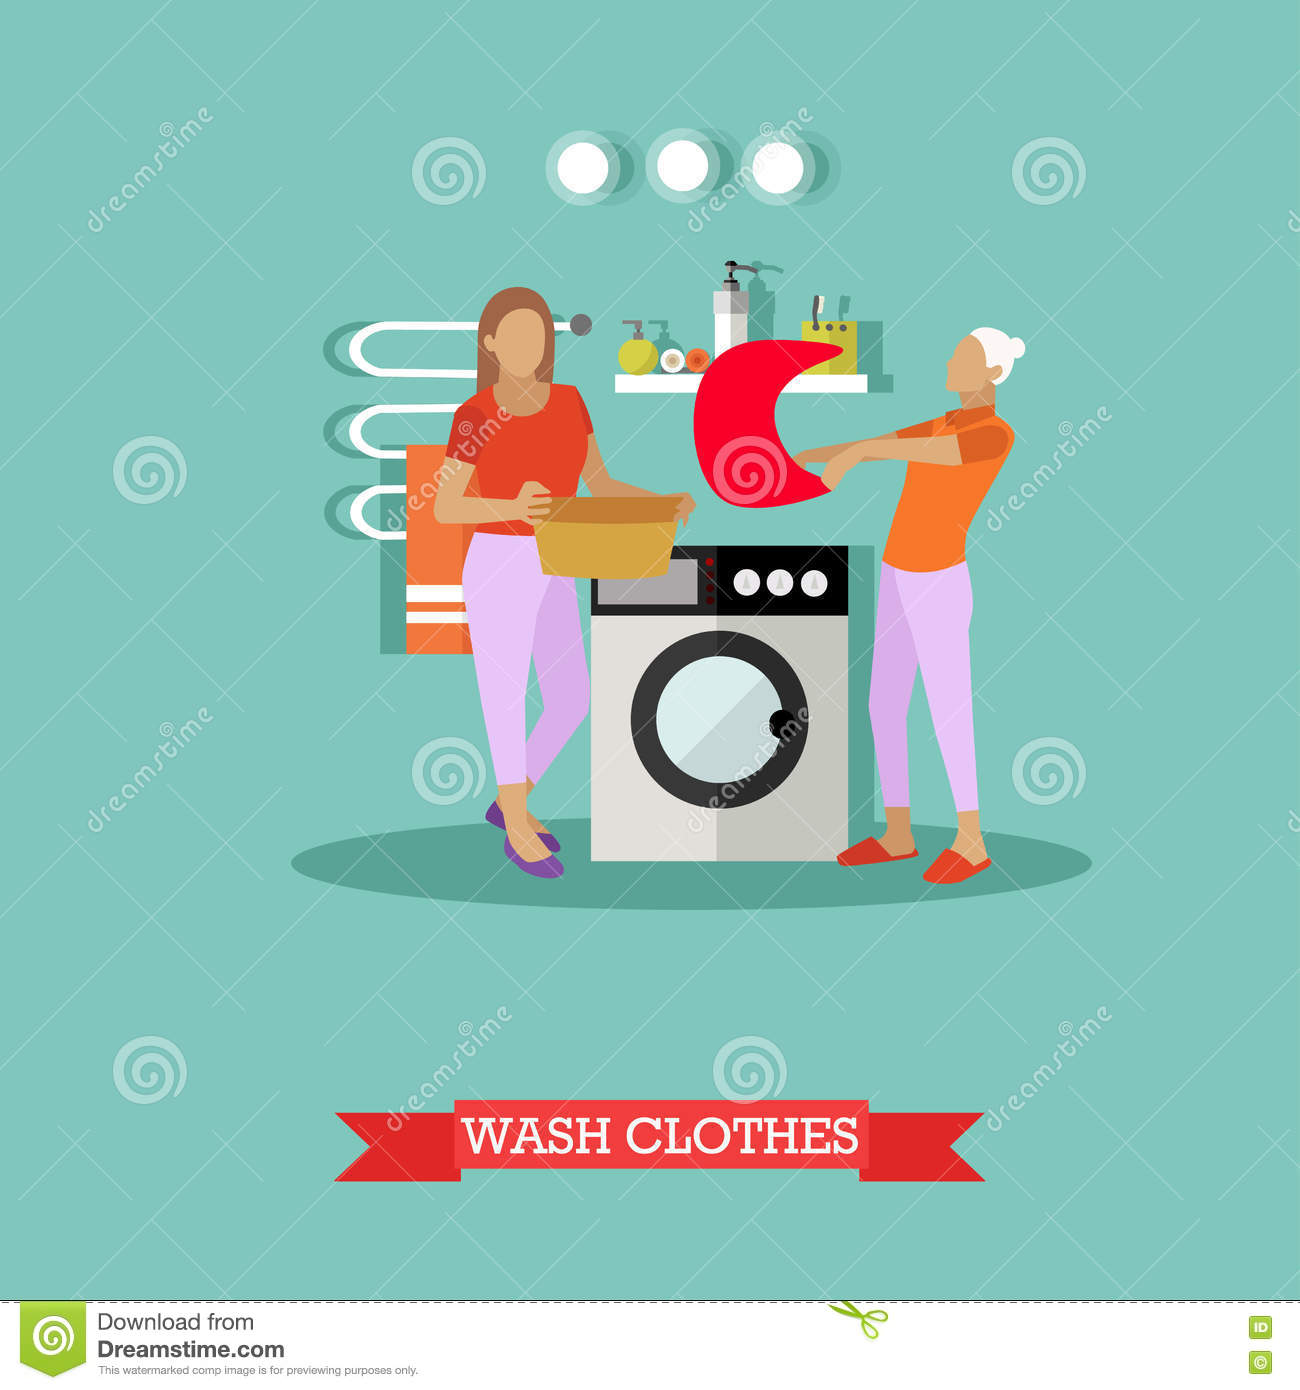 Maid cartoons illustrations vector stock images 3327 pictures to download from - Wrong wash clothesdegrees ...